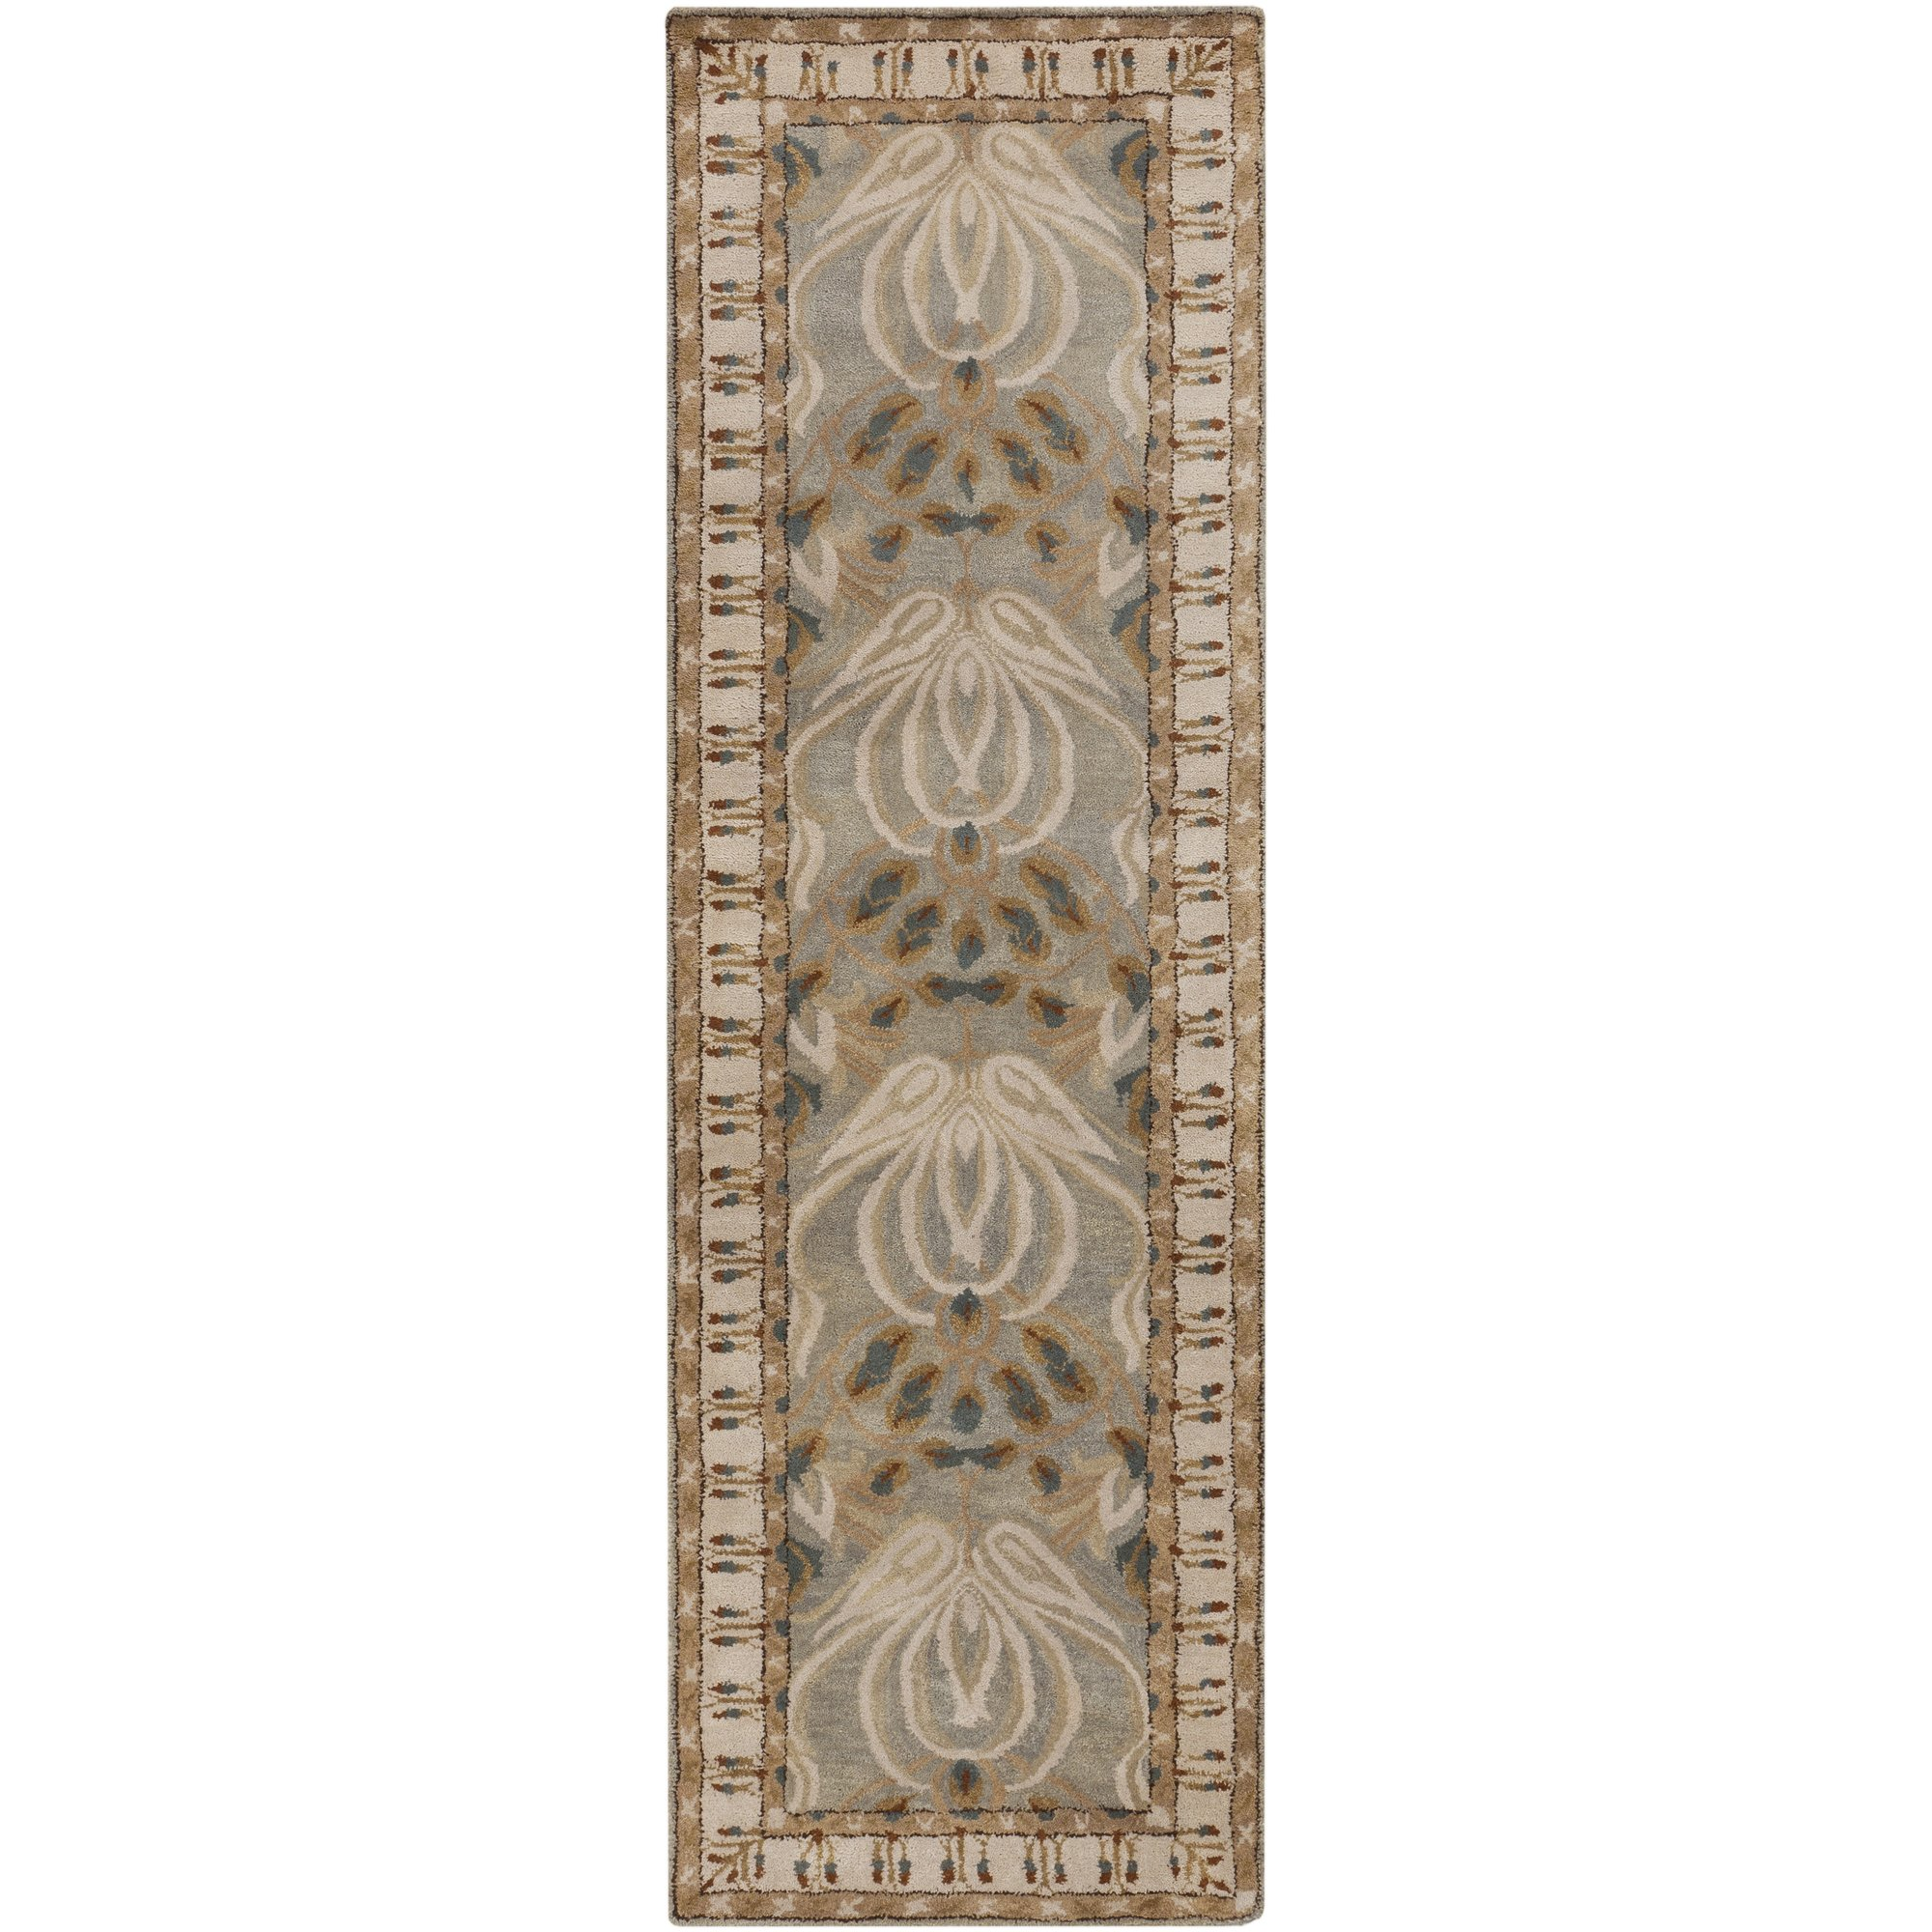 Surya Mentone MTO-7000 Classic Hand Tufted 100% New Zealand Wool Dove Gray 2'6'' x 8' Arts and Crafts Runner